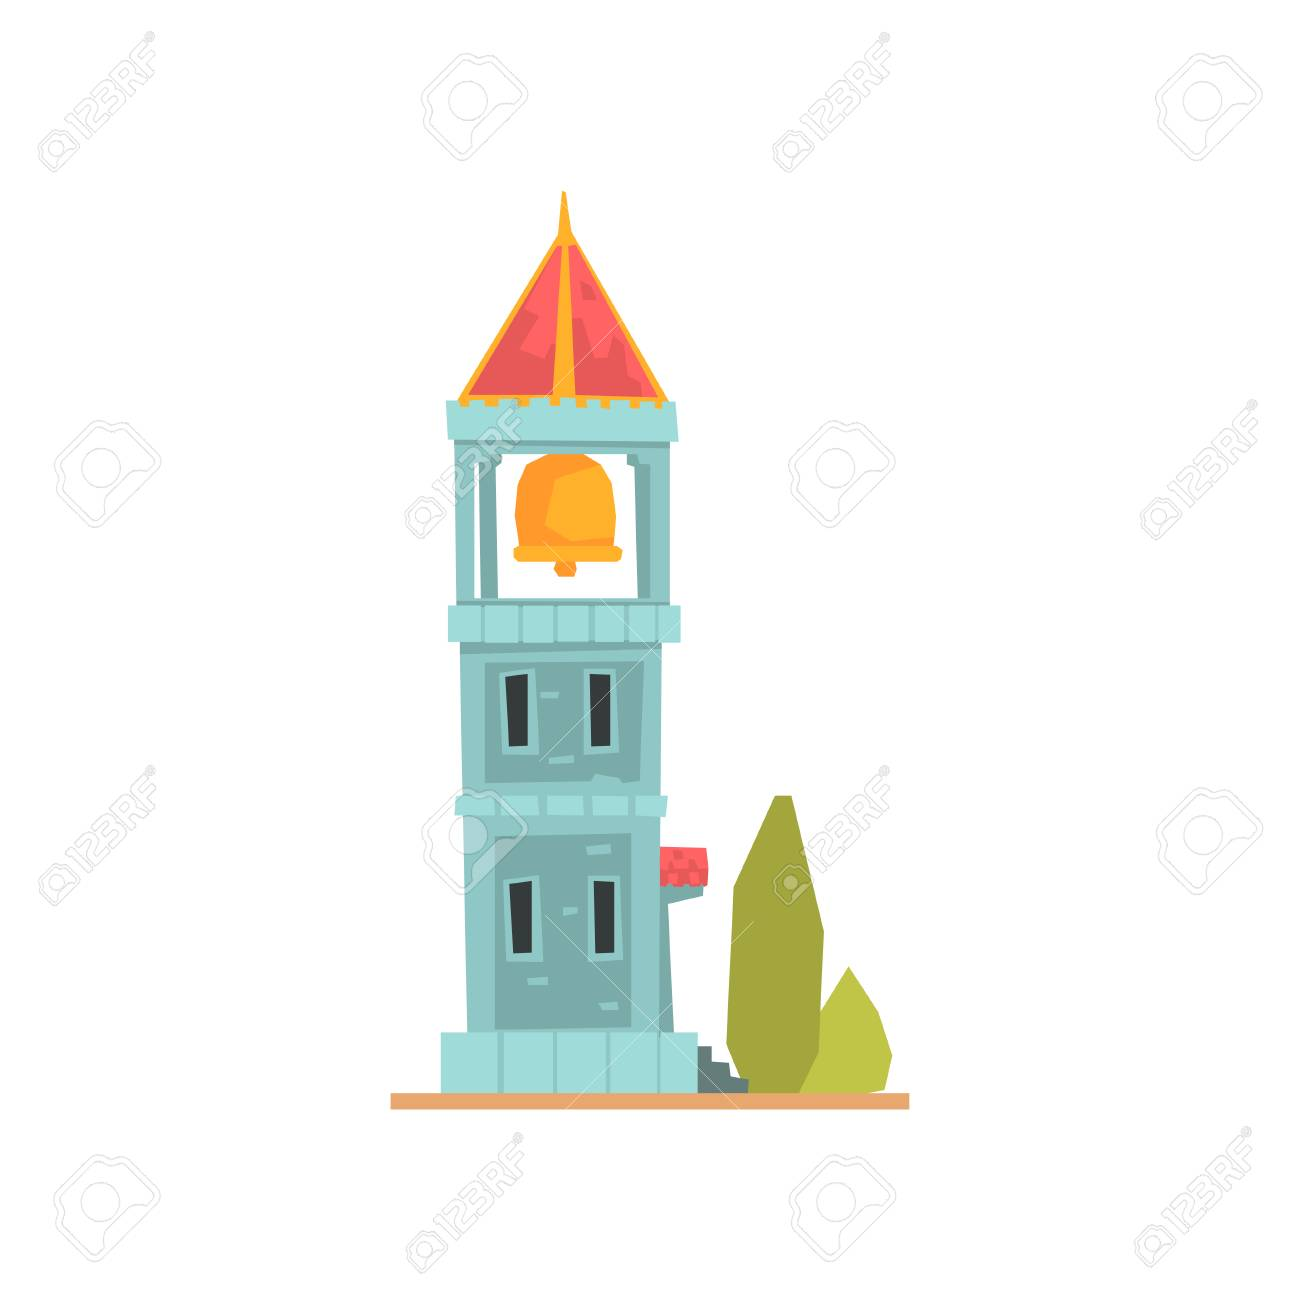 Old stone bell tower, ancient architecture building vector Illustration.